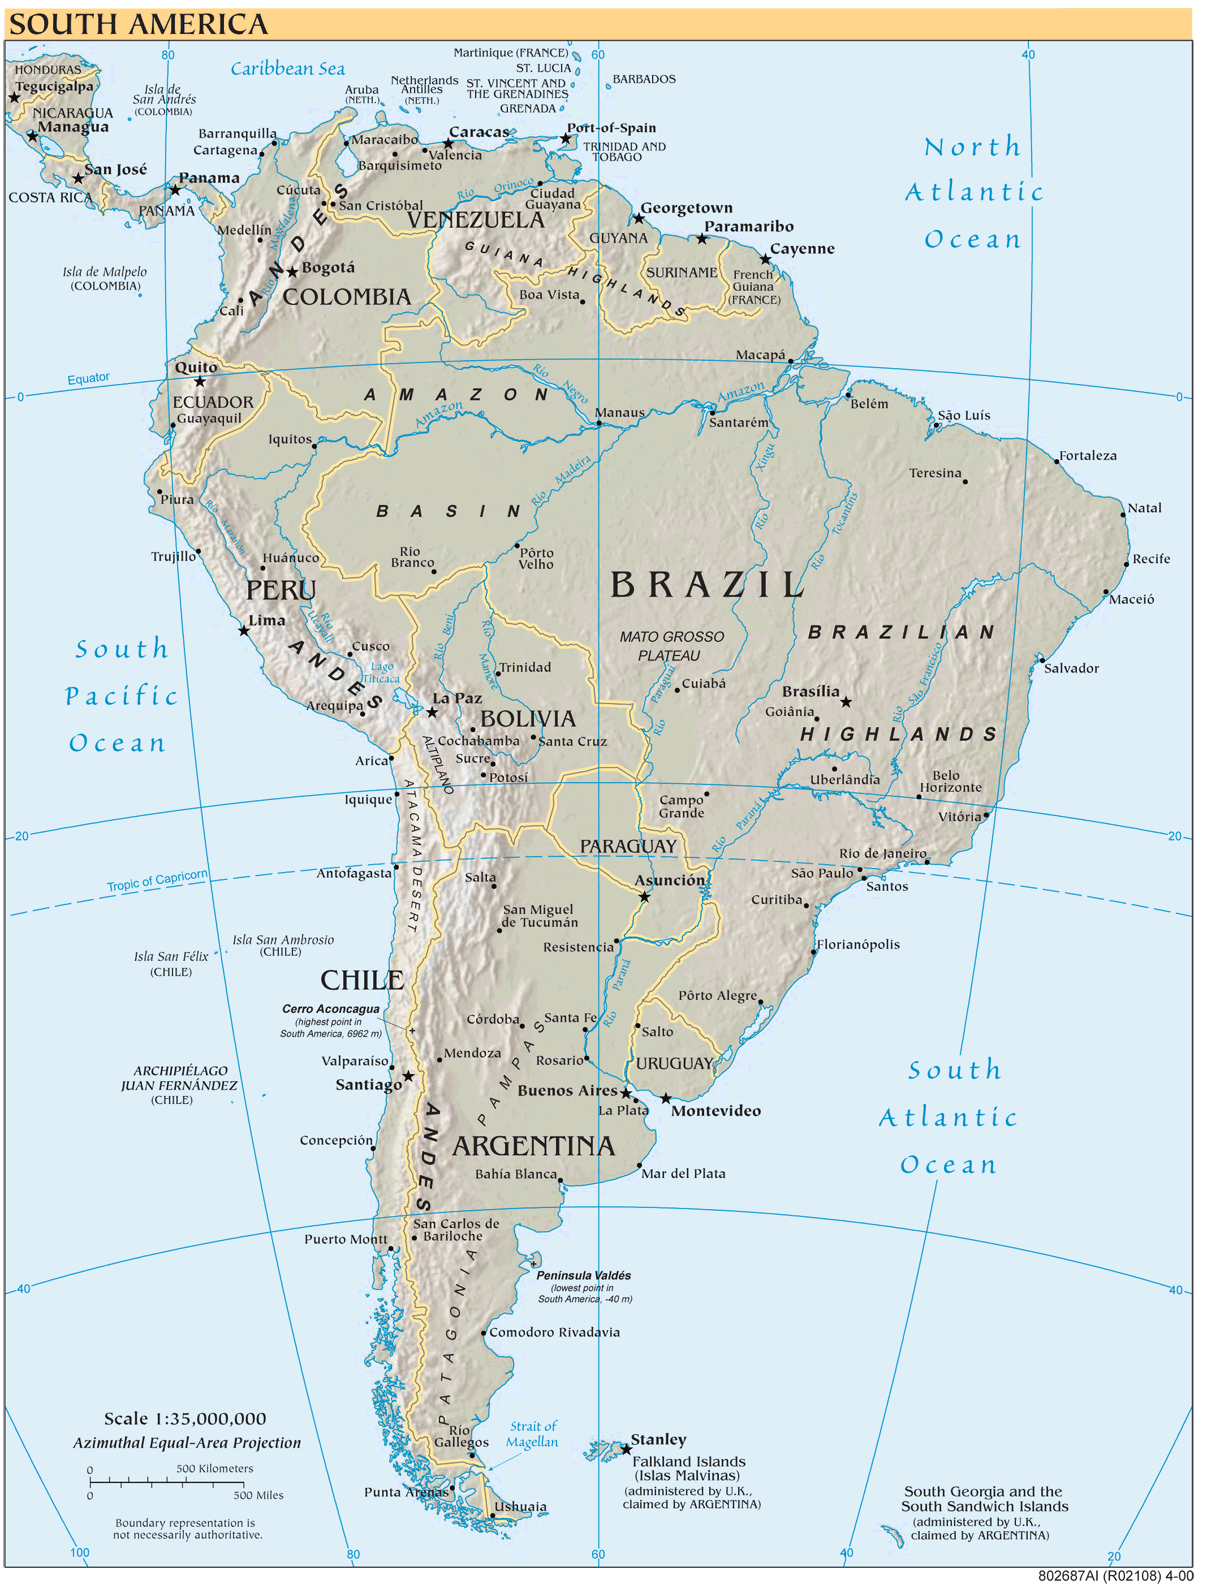 South America Reference Map